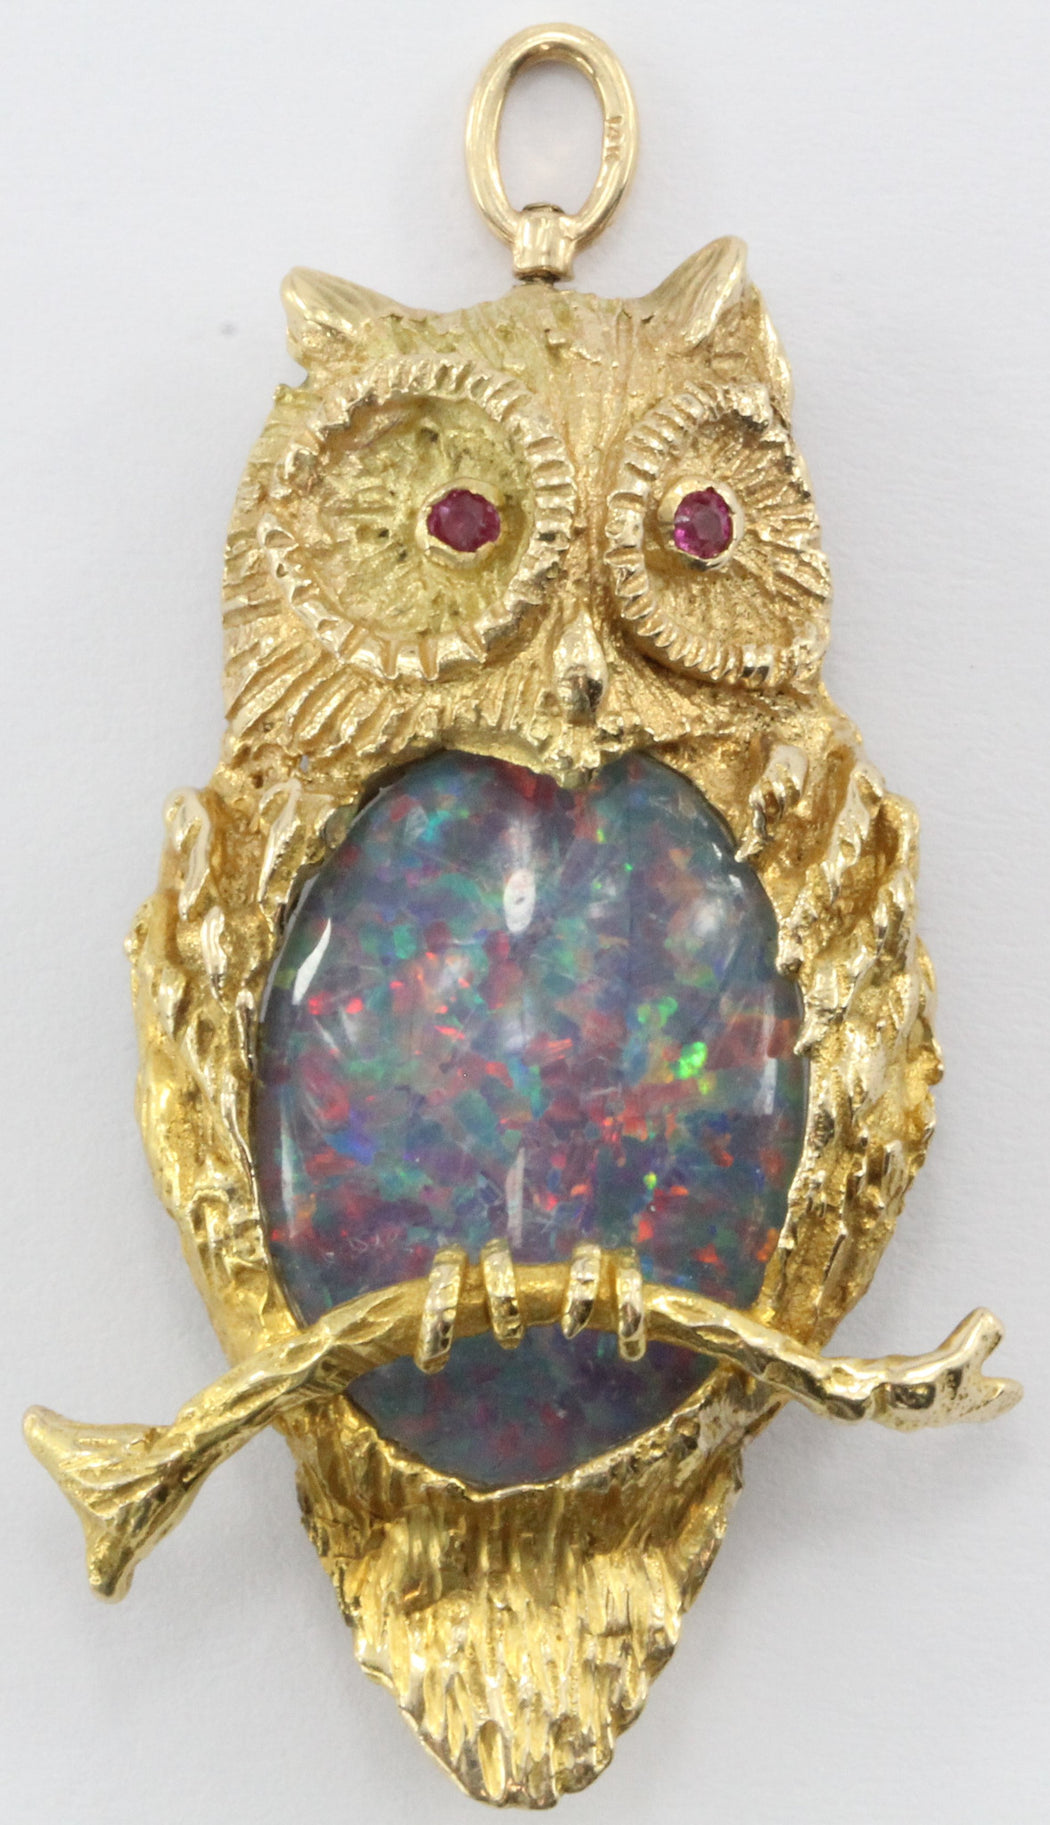 Vintage Designer 14K Gold & Opal & Ruby Perched Owl Pendant / Brooch - Queen May